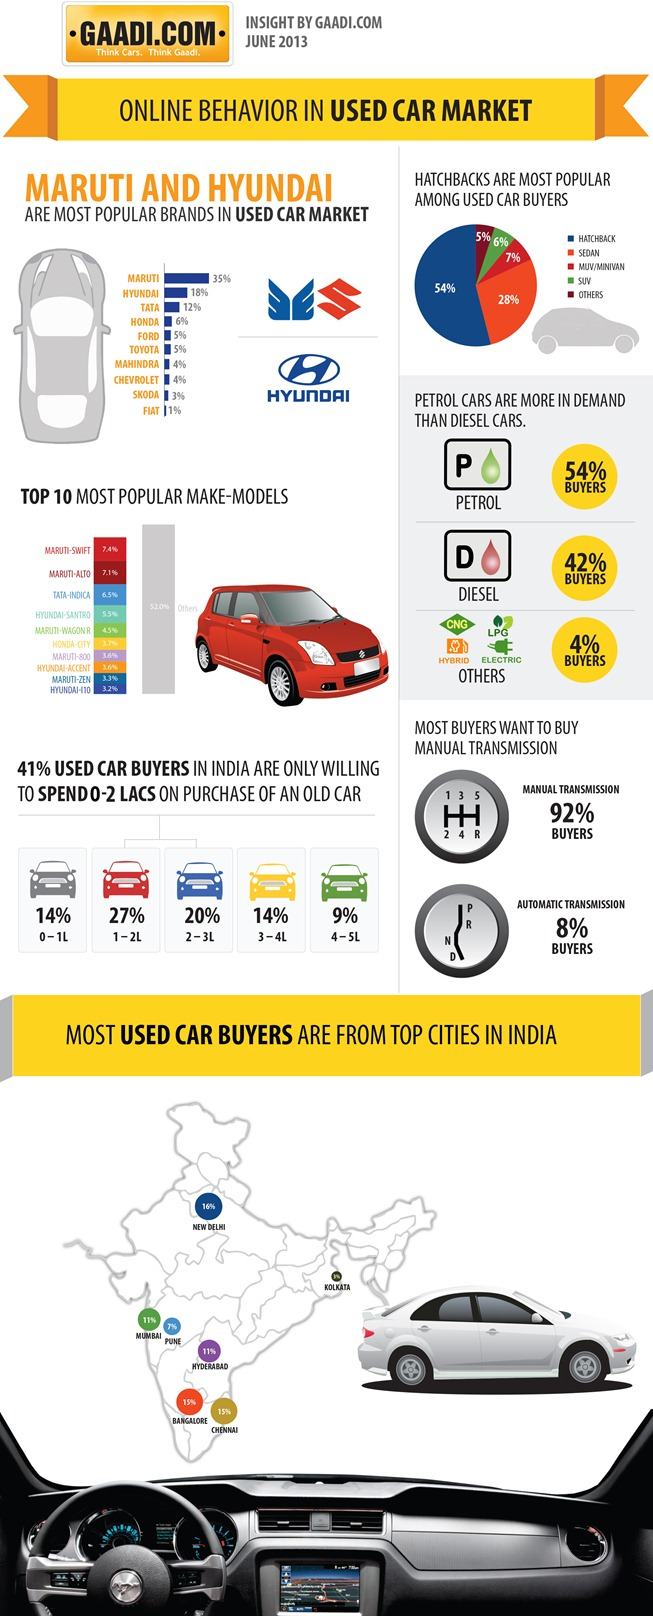 online behavior in used car market infographic infographic list online behaviour in used car market 5211e2cc3f579